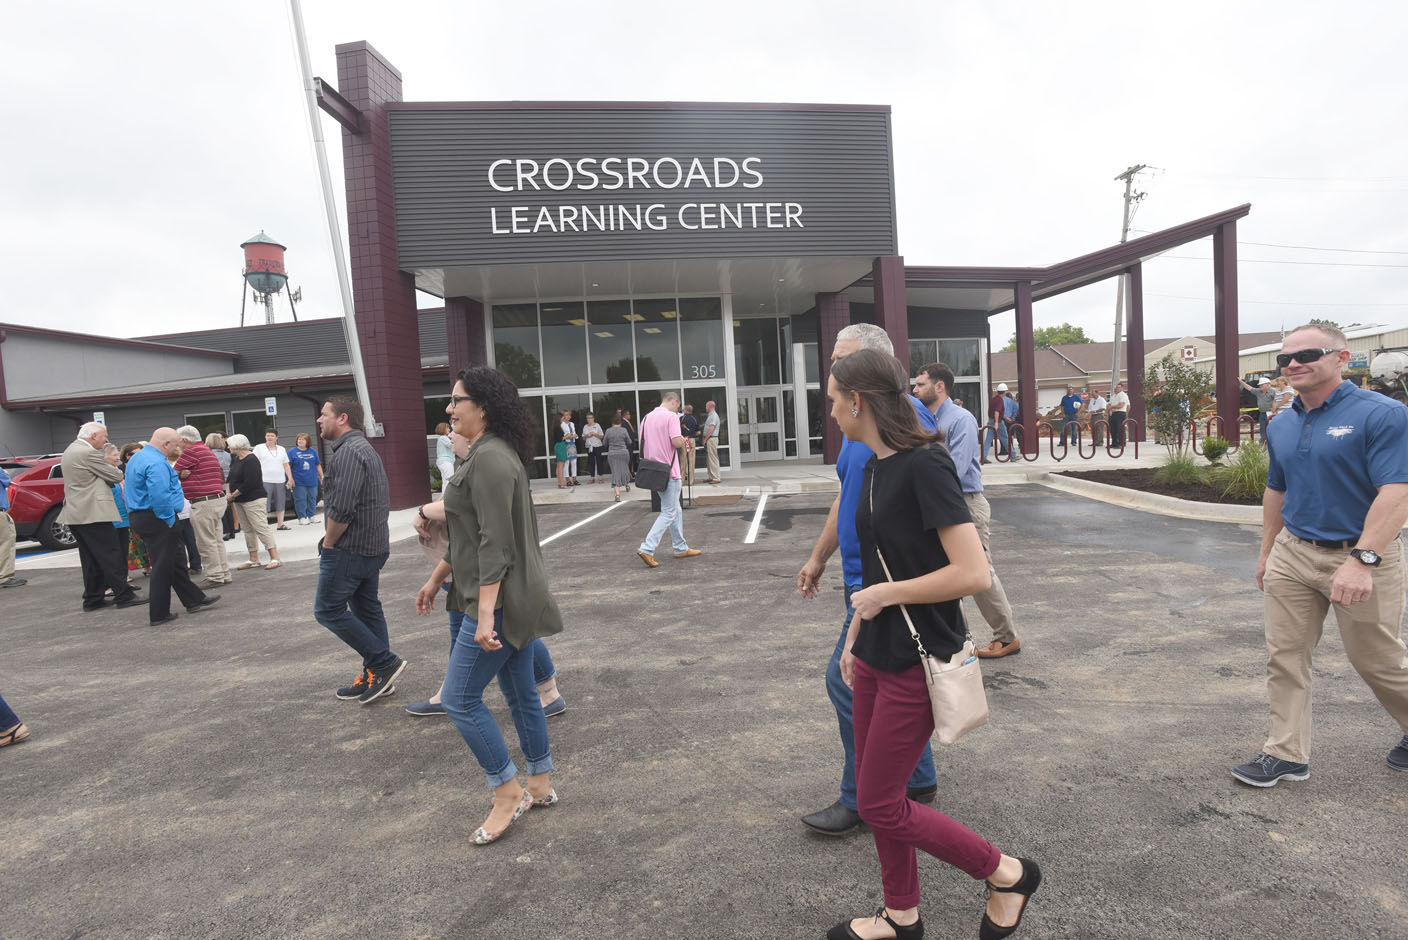 Crossroads Learning Center opens in downtown Rogers | NWADG